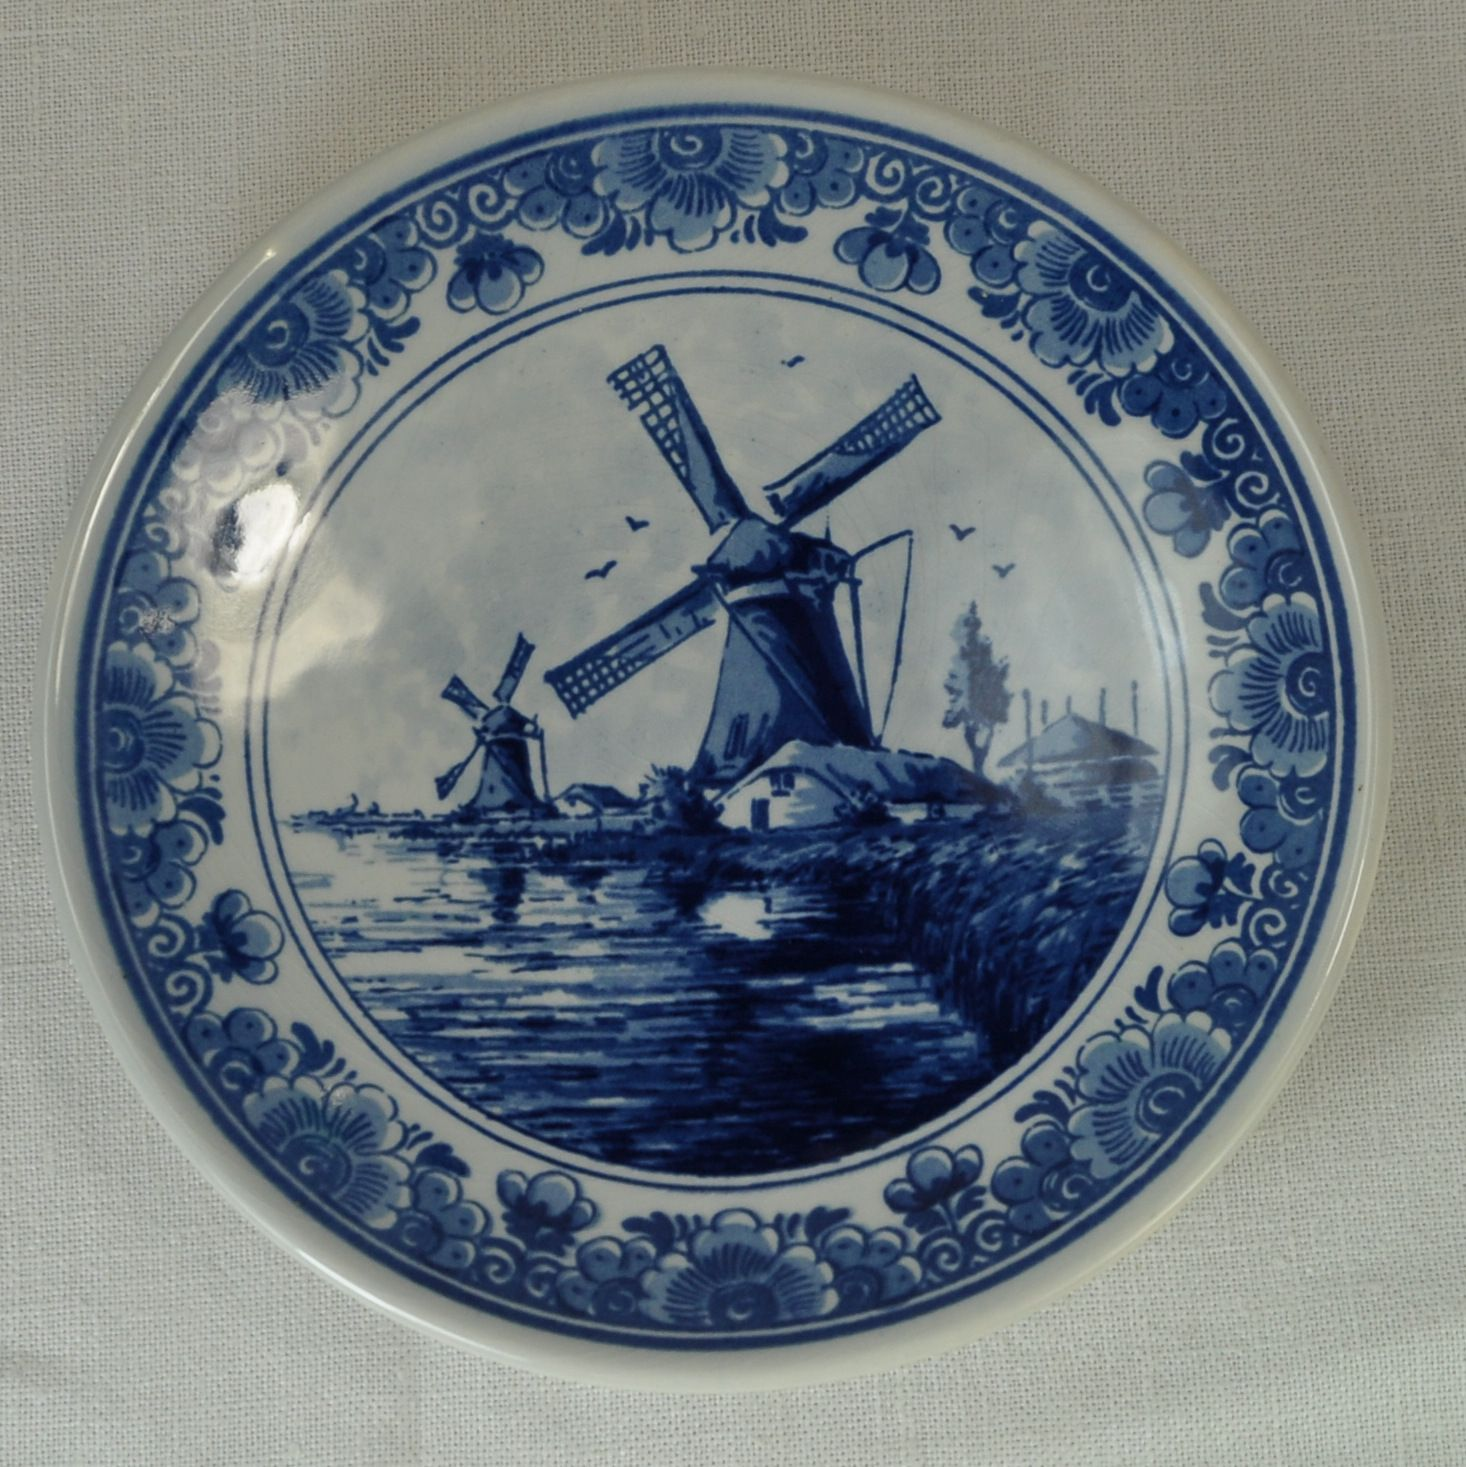 Delft Blauw Small Decorative Plate Hand Painted Signed